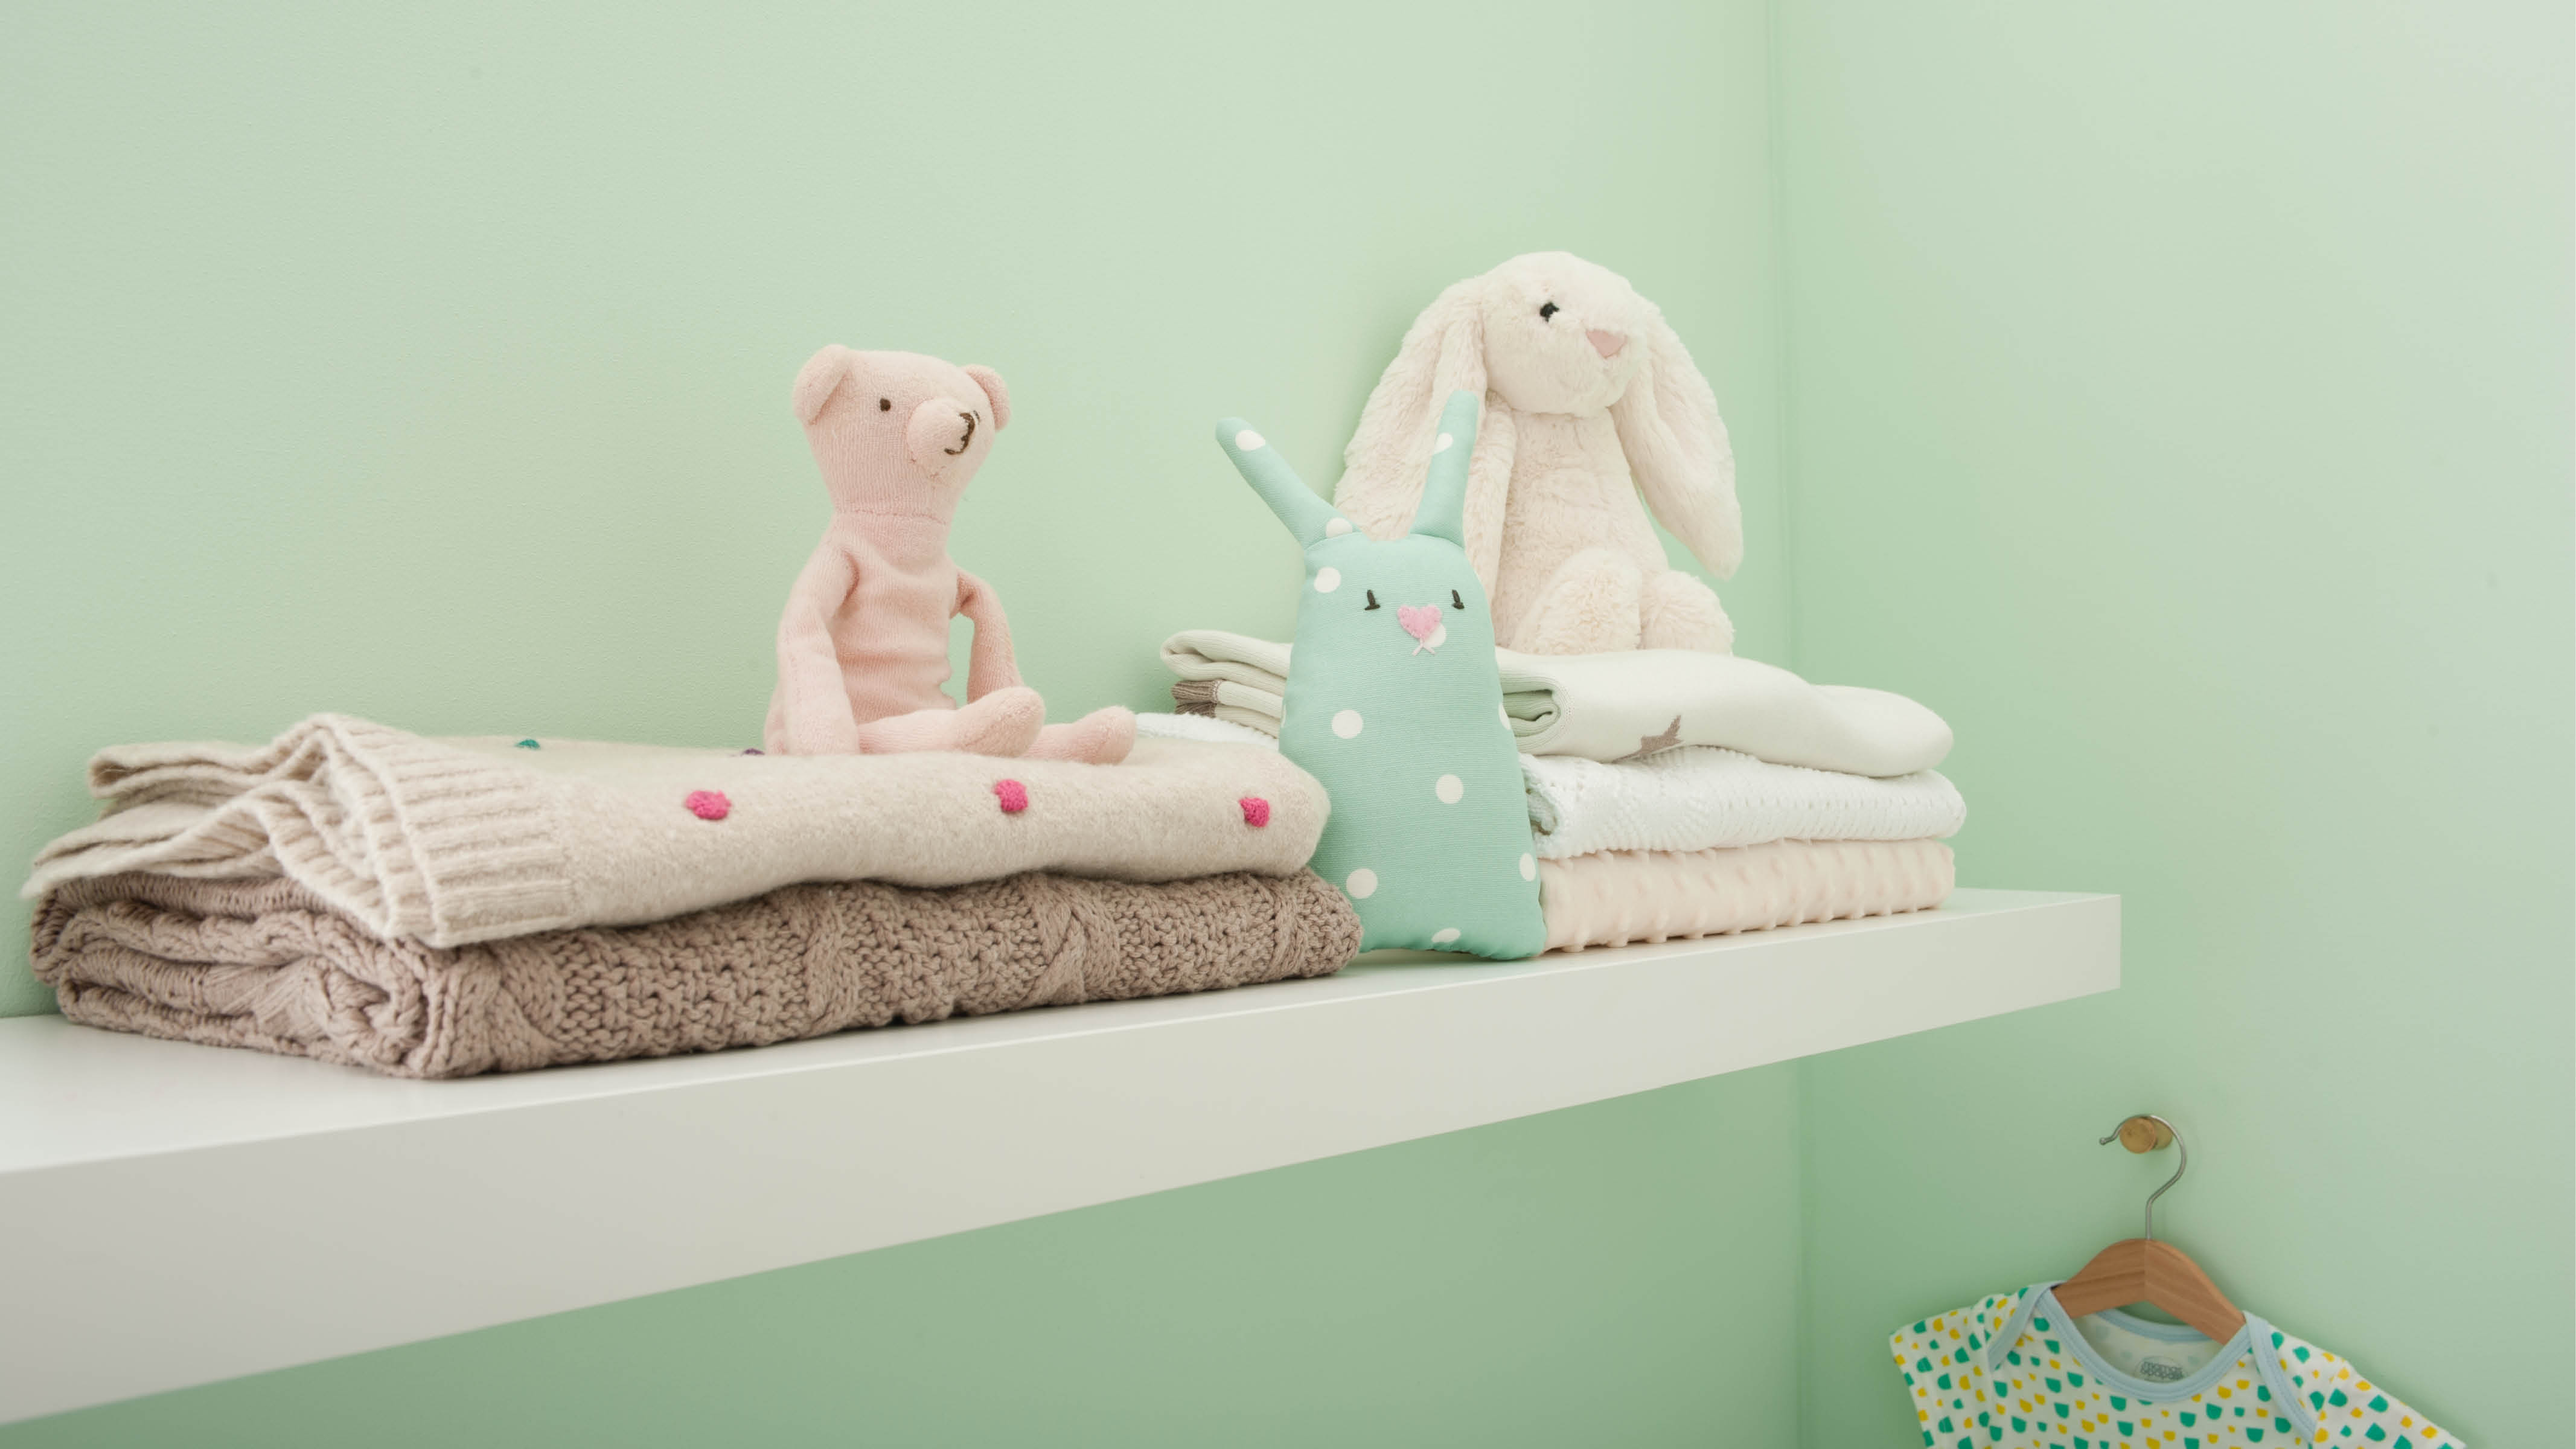 Mint green is both soft and fresh, making it ideal for a nursery scheme – it's mellow enough to let your little one doze off but invigorating enough to keep you going on those nights when they're just refusing to settle.